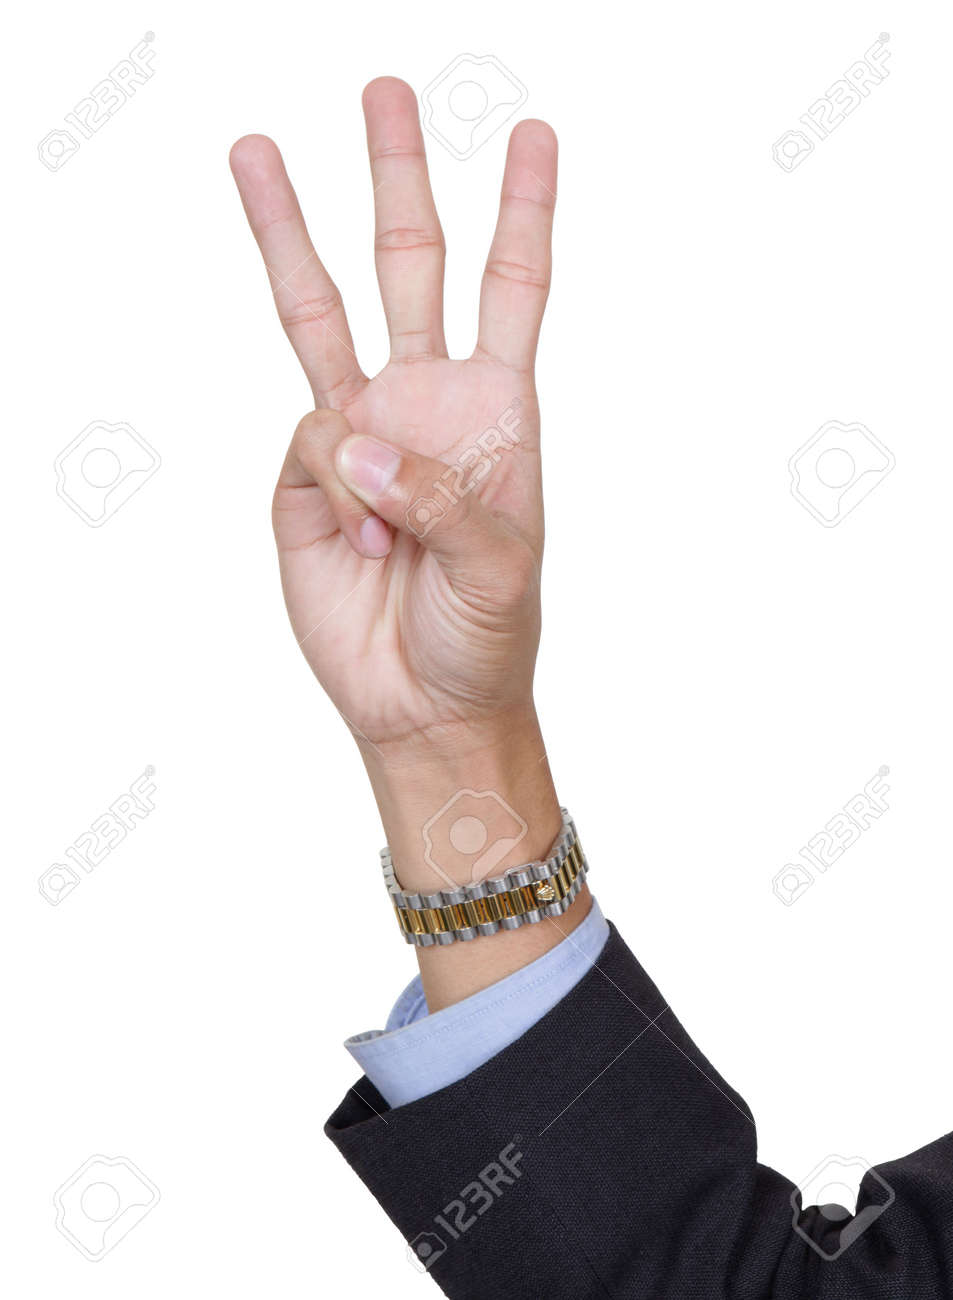 Three fingers pointing up, counting number 3, palm forward, thumb folded, with arm in business suit. Isolated over white with copy space. - 6398044